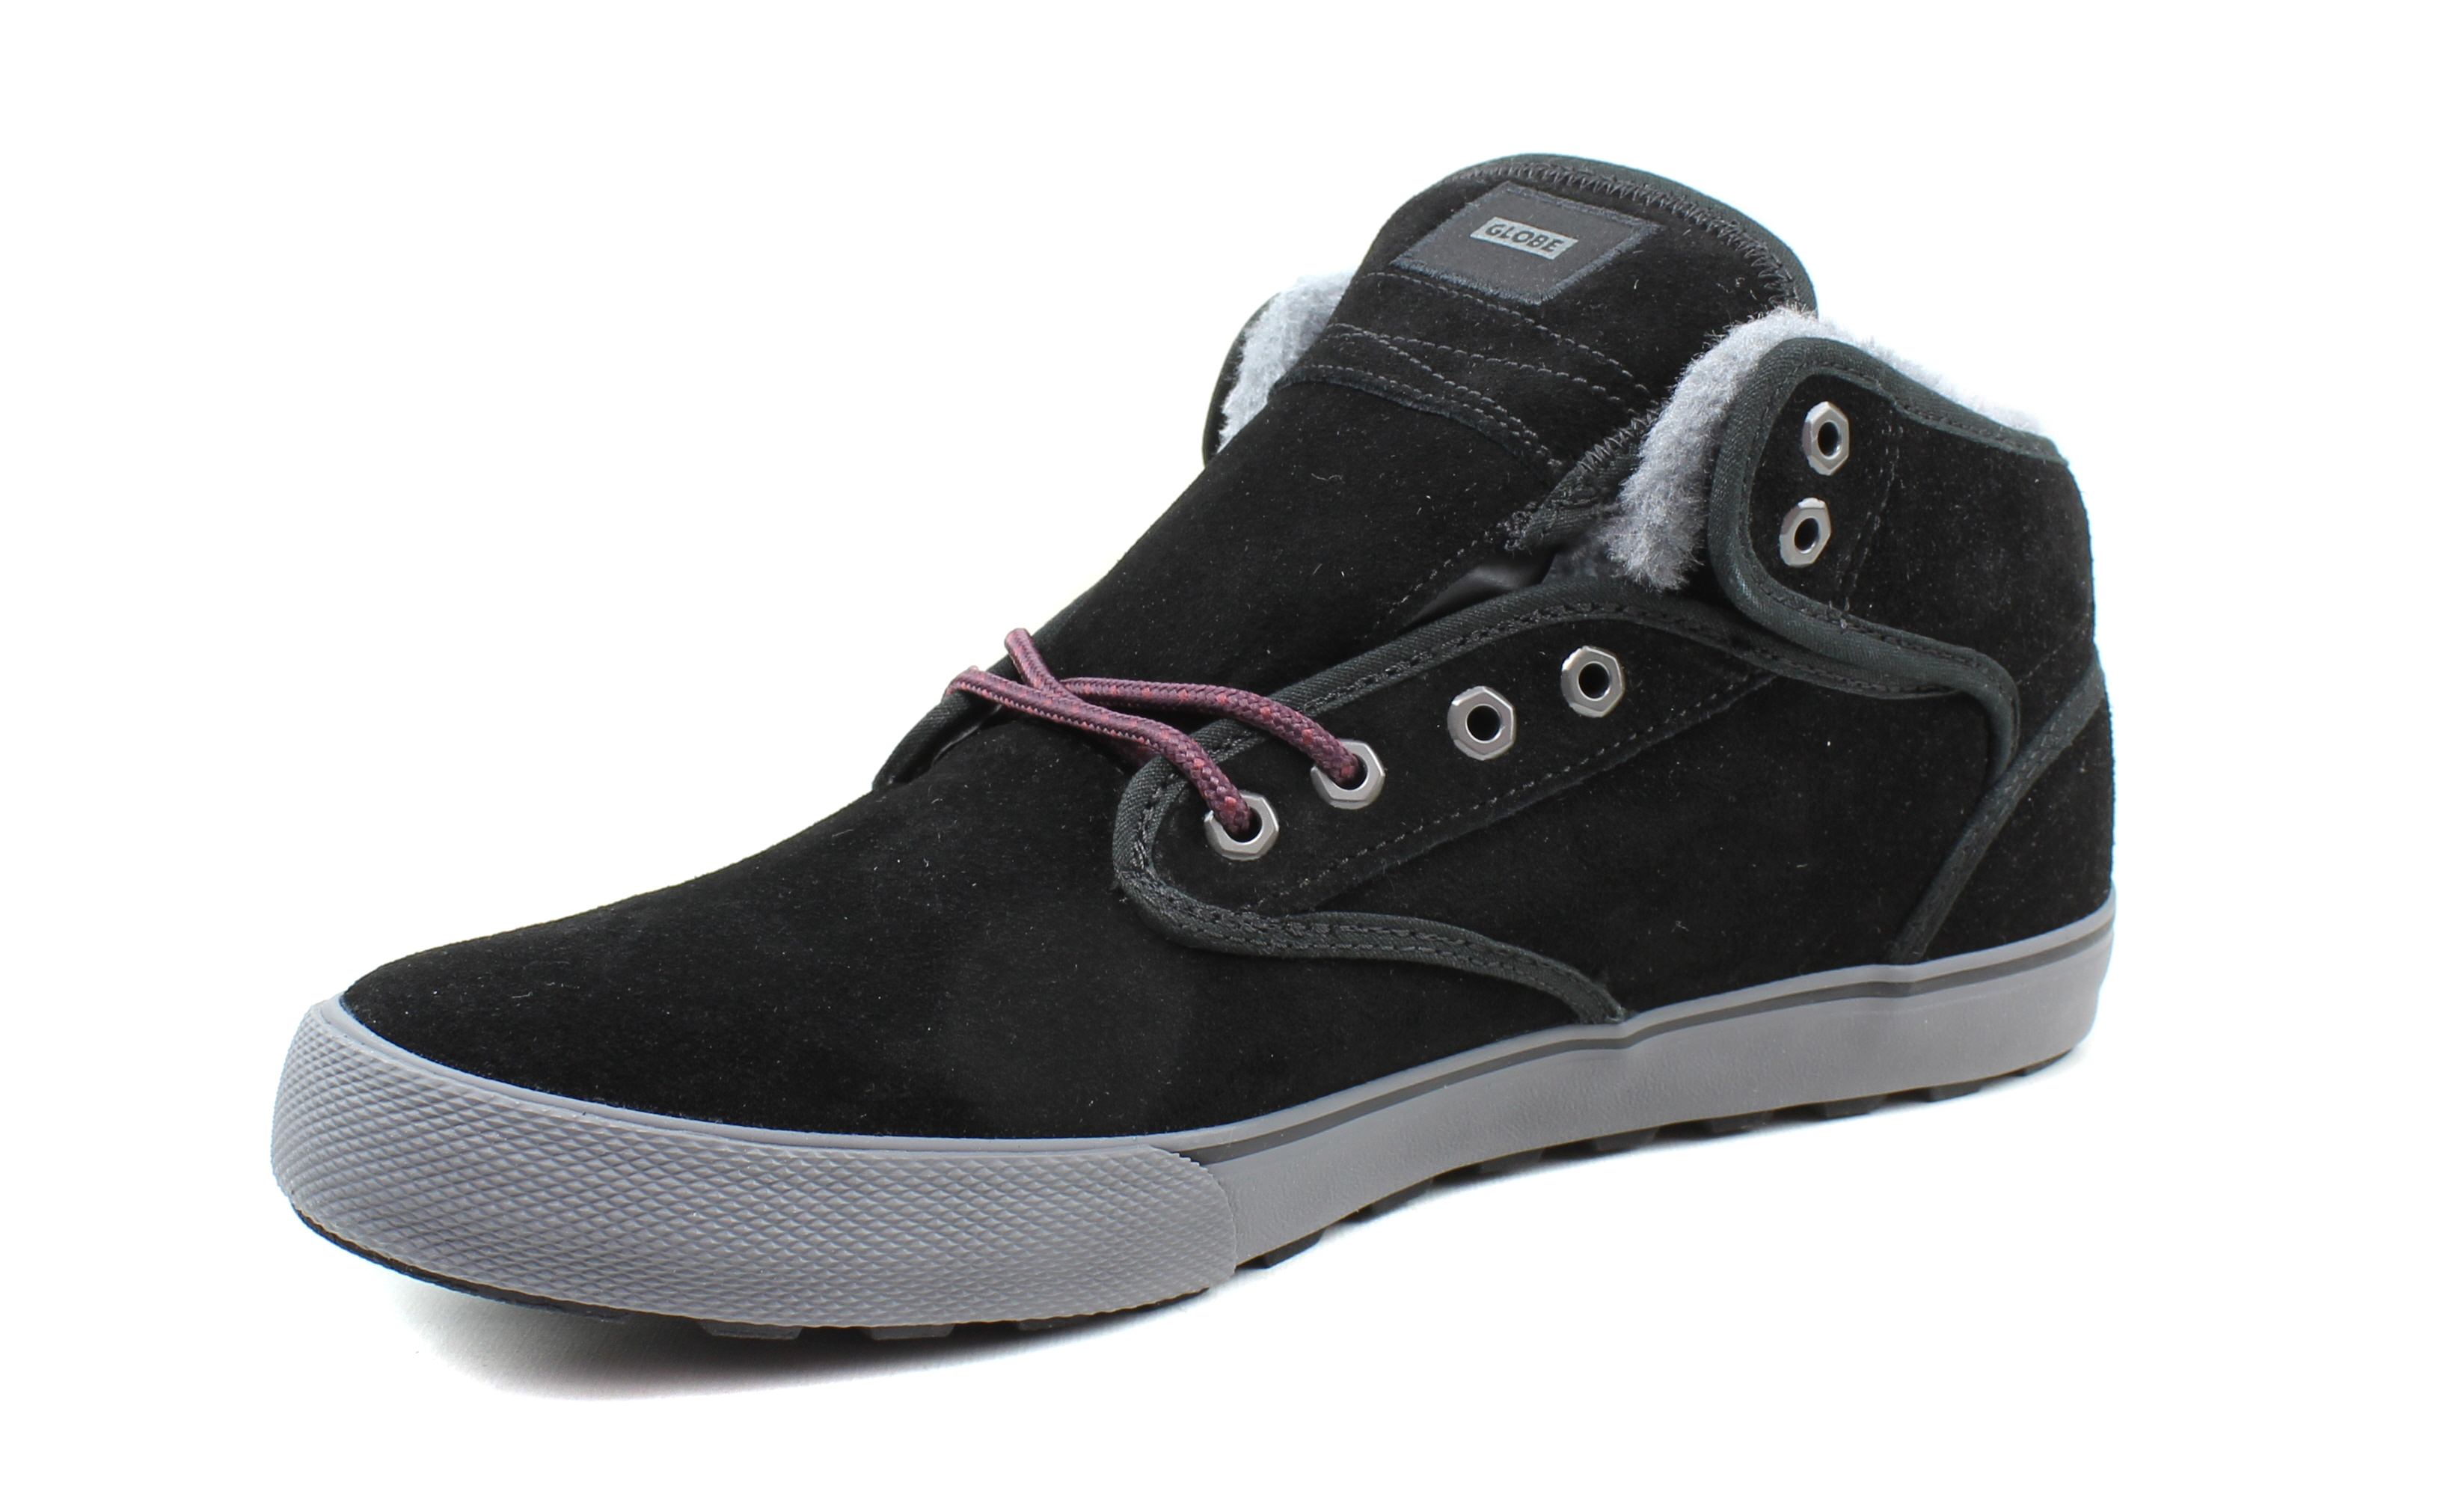 Globe-Mens-Motley-Mid-Skateboarding-Insulated-Leather-Casual-Shoes thumbnail 6